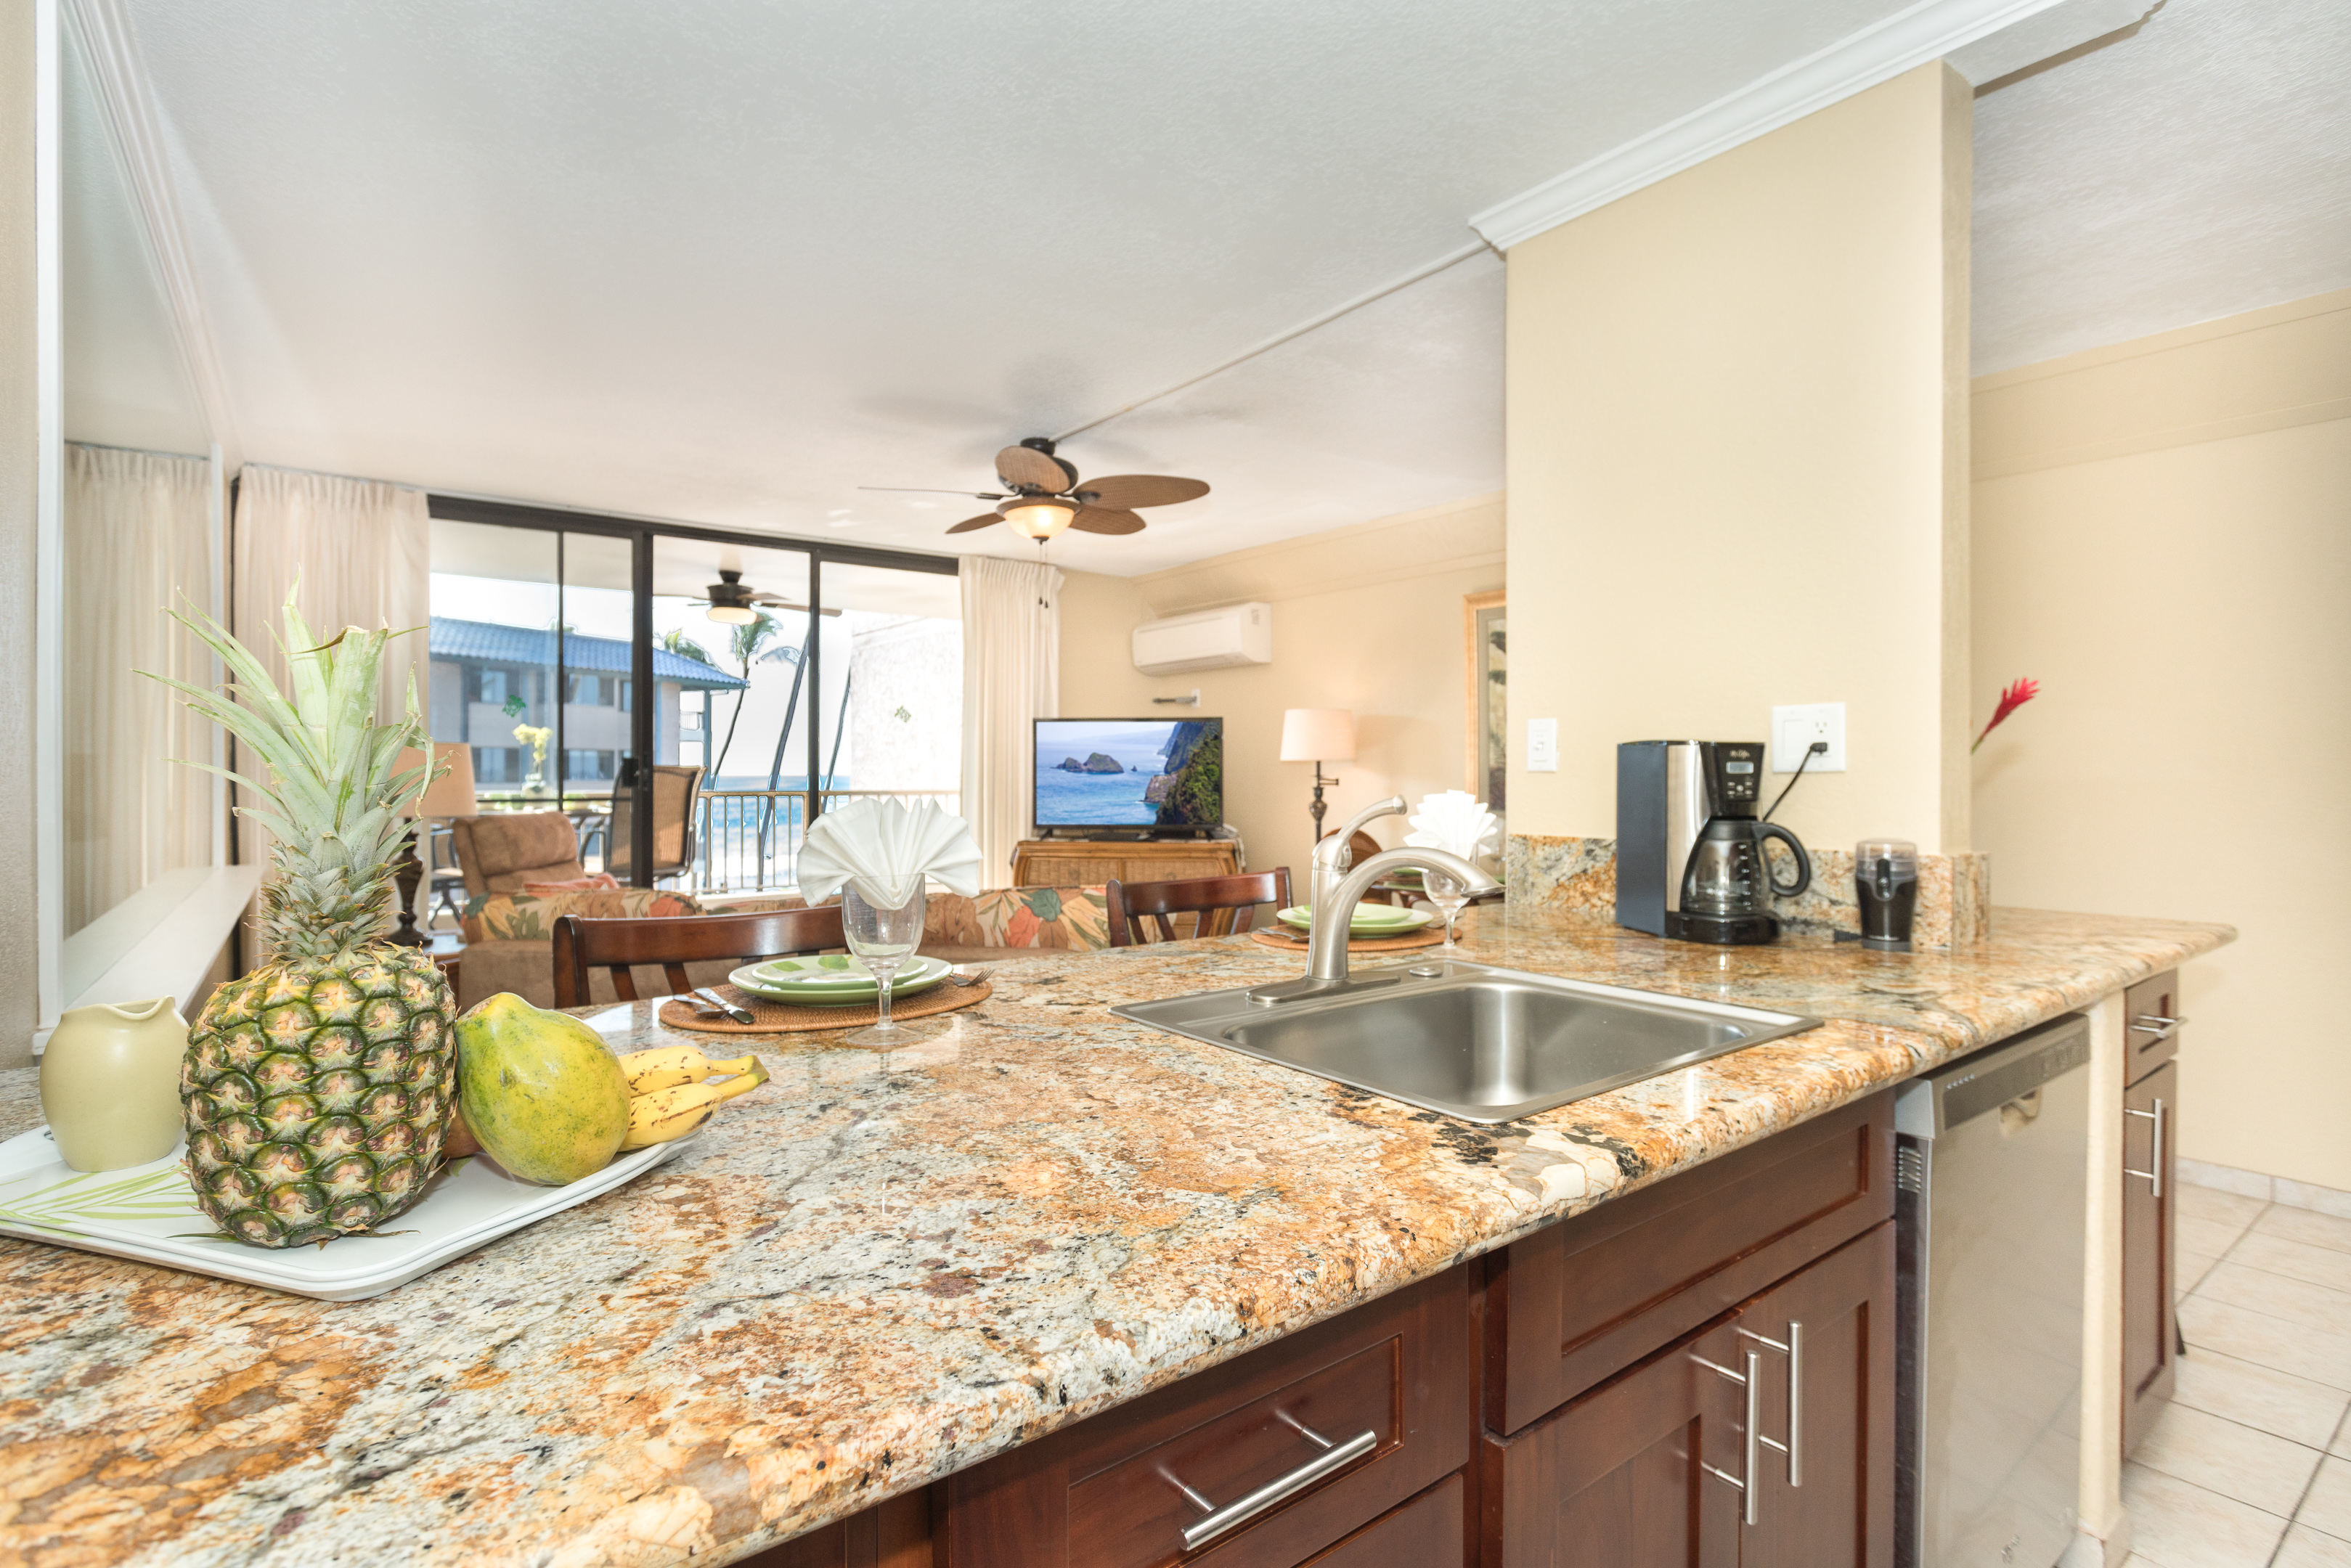 Guests share clean up in this kitchen is a pleasure.